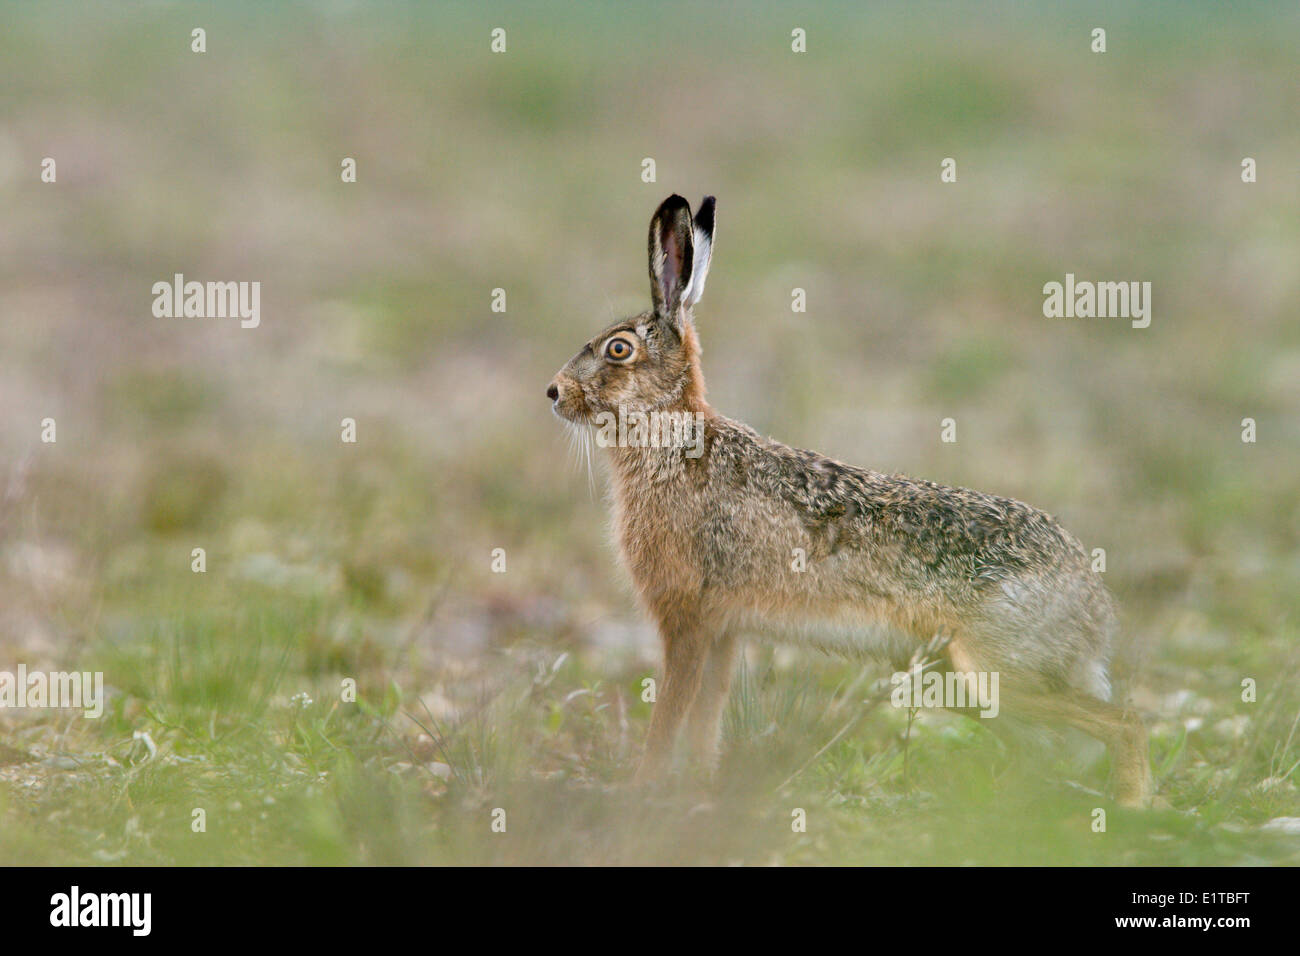 Cautious Hare - Stock Image